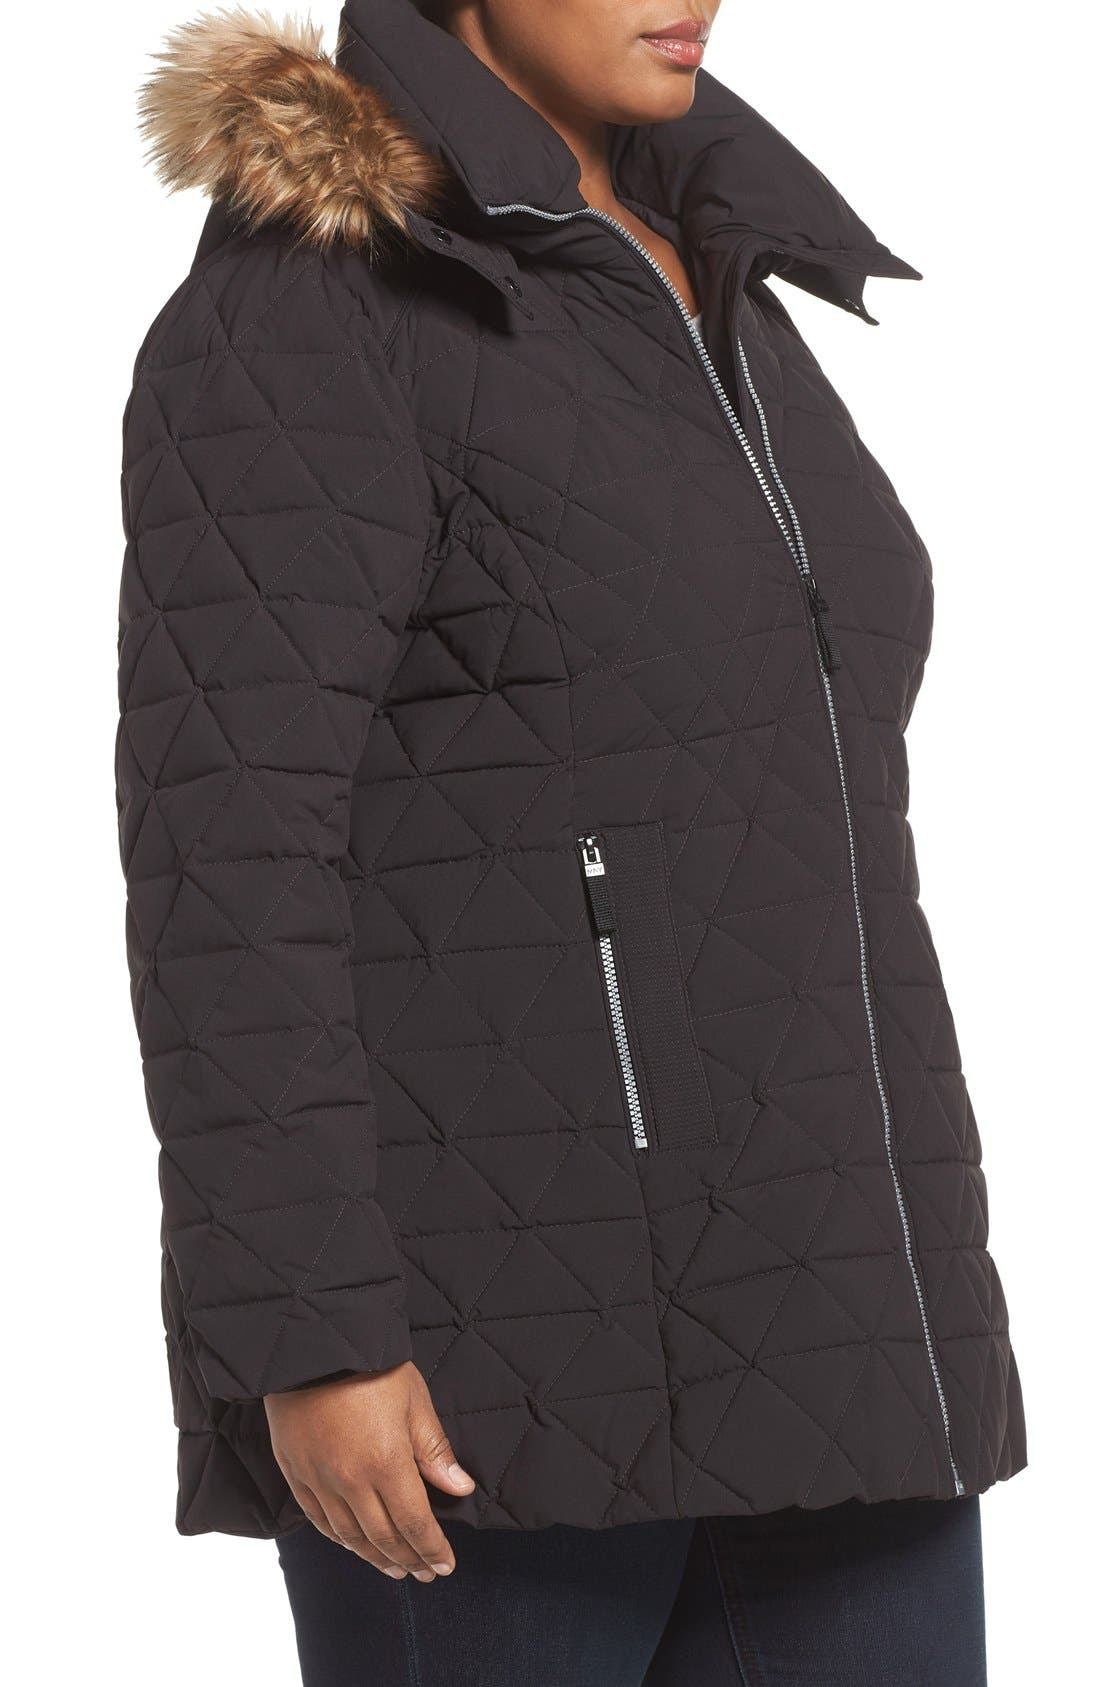 Alternate Image 3  - Andrew Marc Down Jacket with Faux Fur Trim Hood (Plus Size)